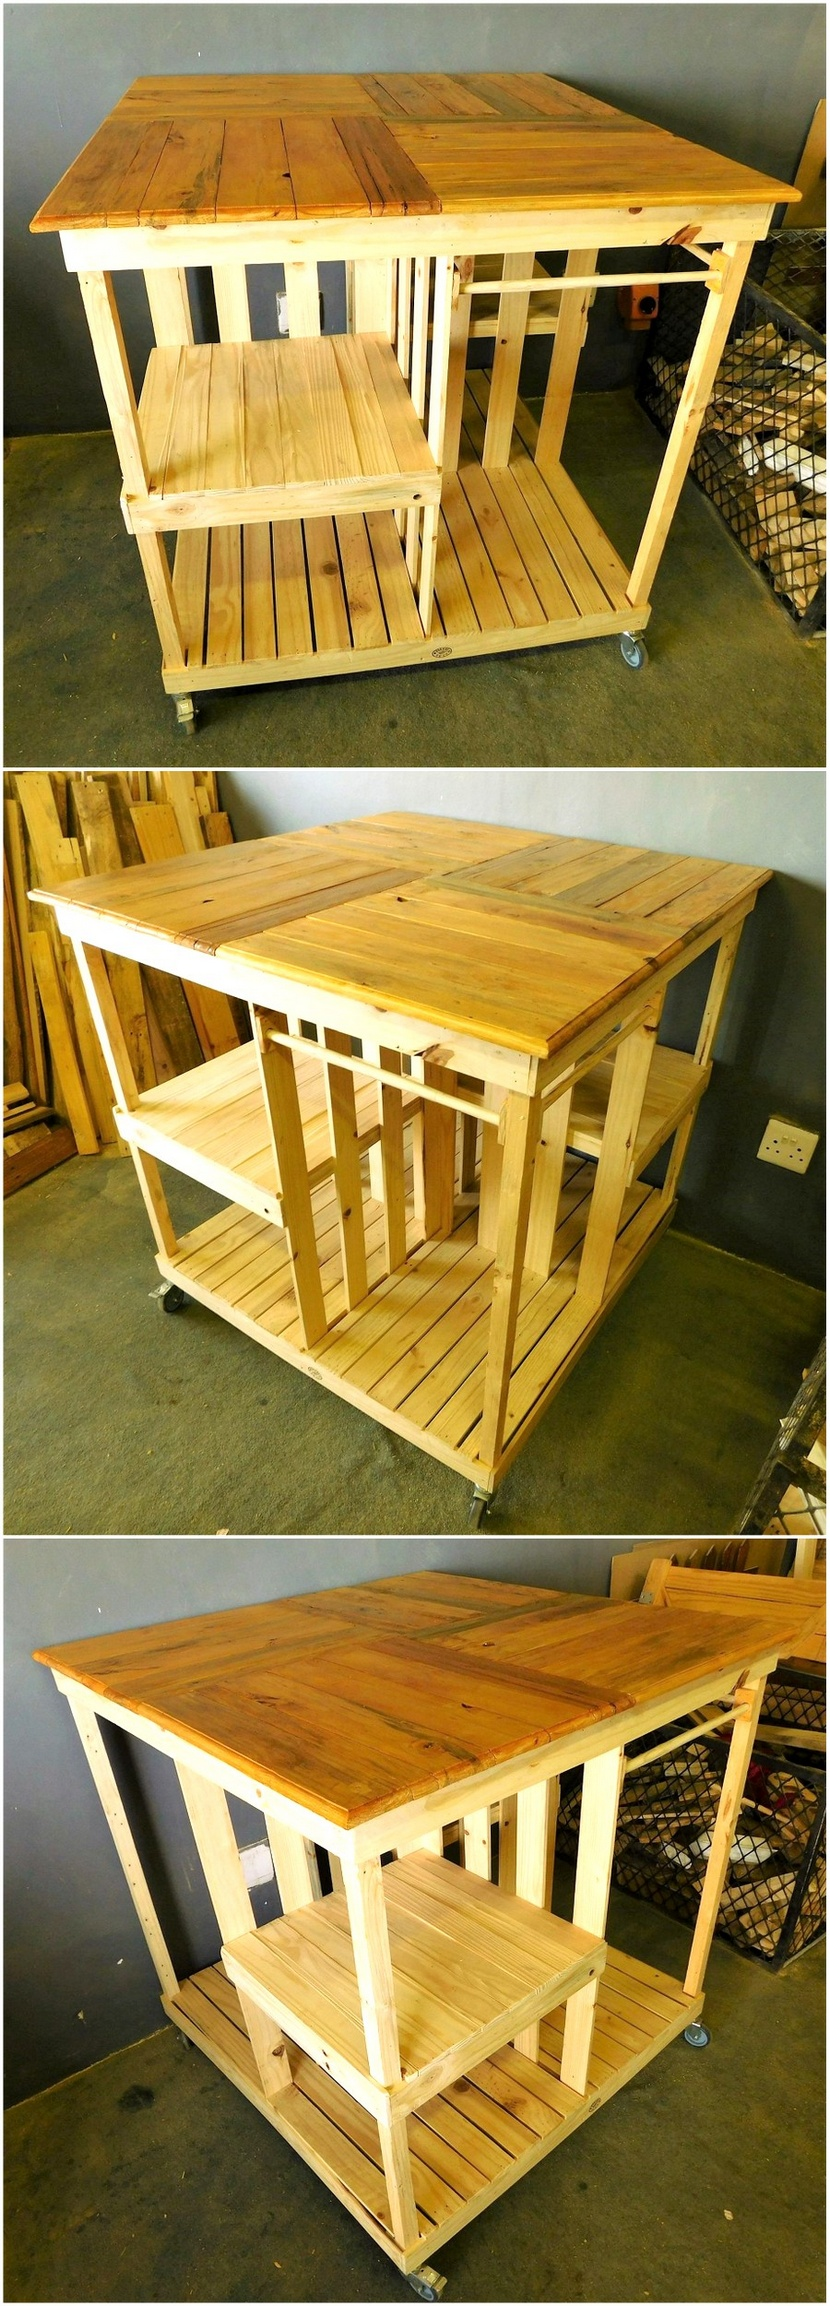 reused pallet wooden kitchen island